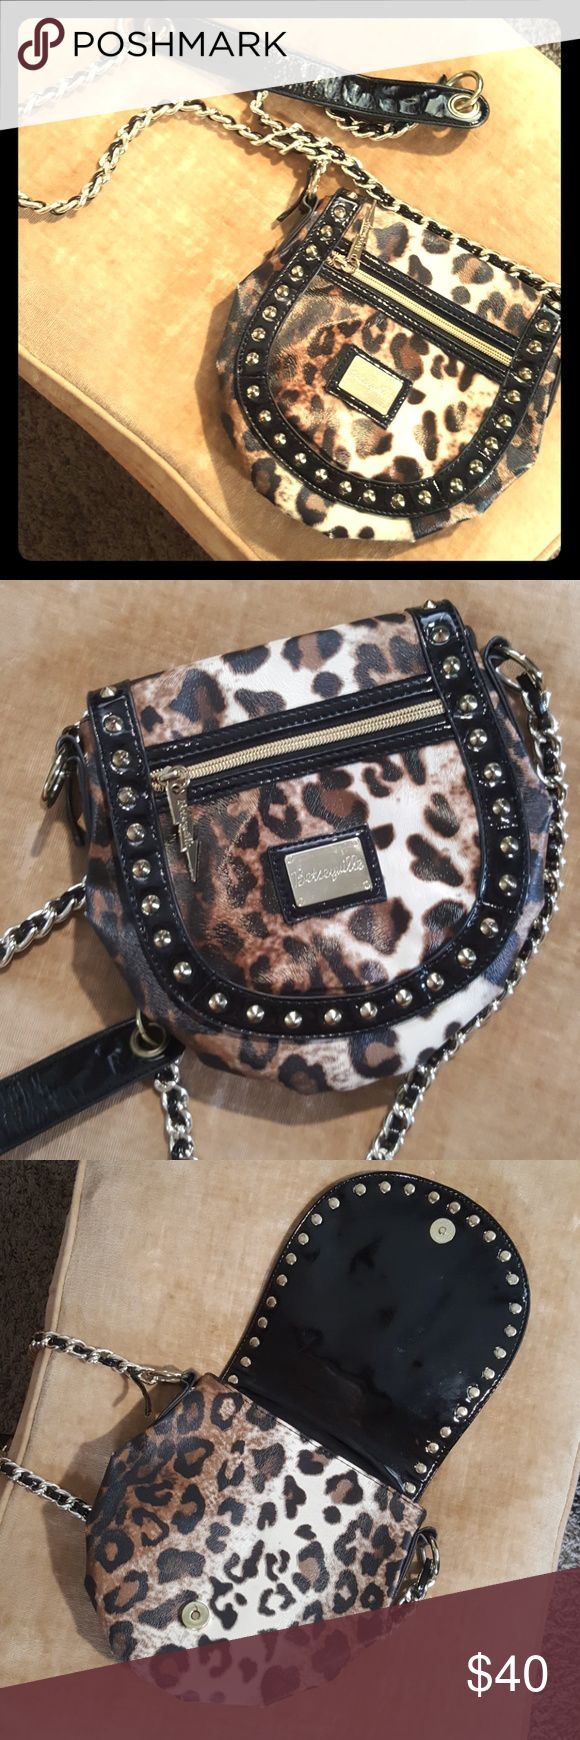 "Betsyville Crossbody bag 💕ADORABLE💜 This is a leather, leopard print Betsey Crossbody with hot pink liner.  So cute and it's lightweight! Perfect for the ""on the go"" girl or a night out on the town.  Excellent Condition, absolutely no sign of wear. 😁 Betseyville Bags Crossbody Bags"